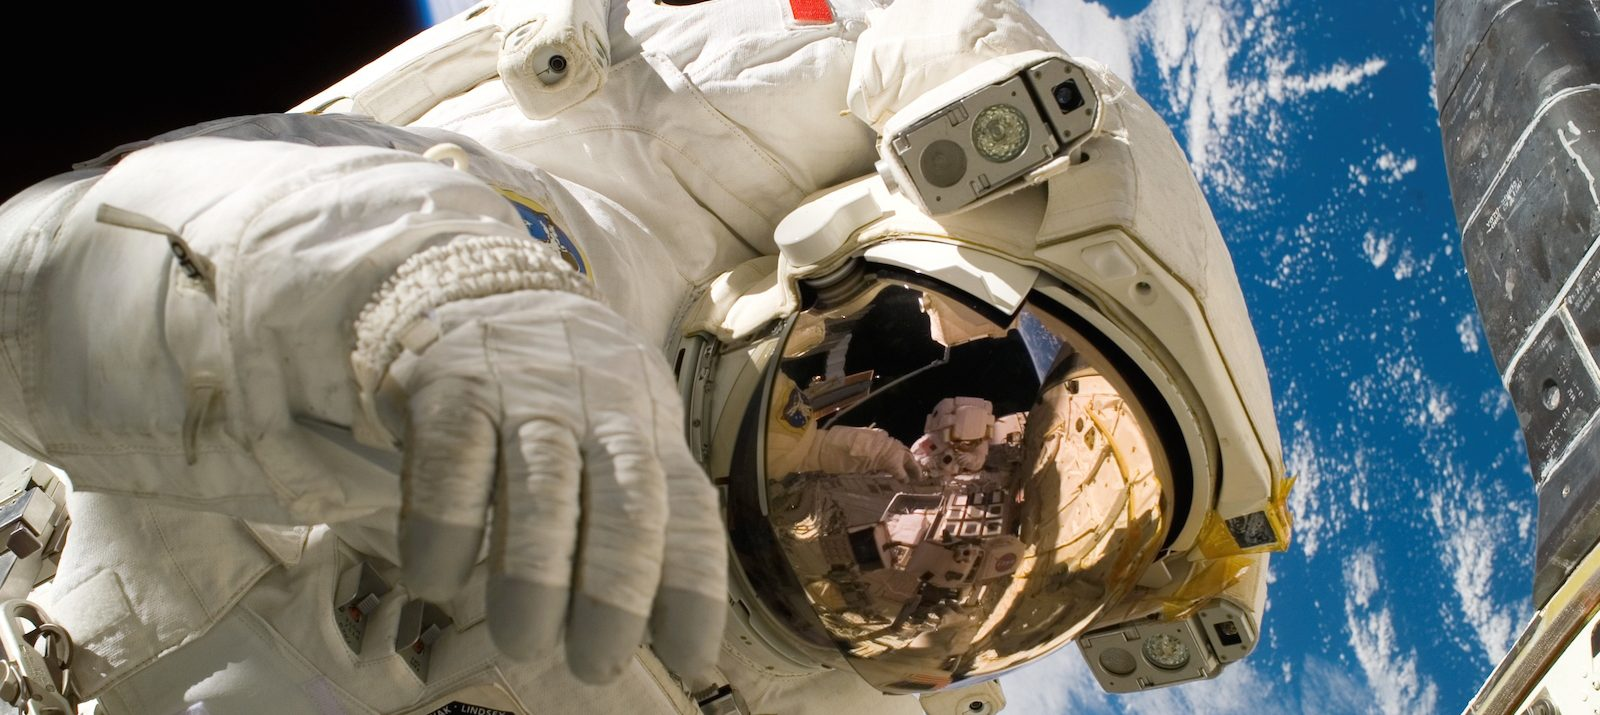 how to live in small spaces: channel your inner astronaut piers sellers spacewalk